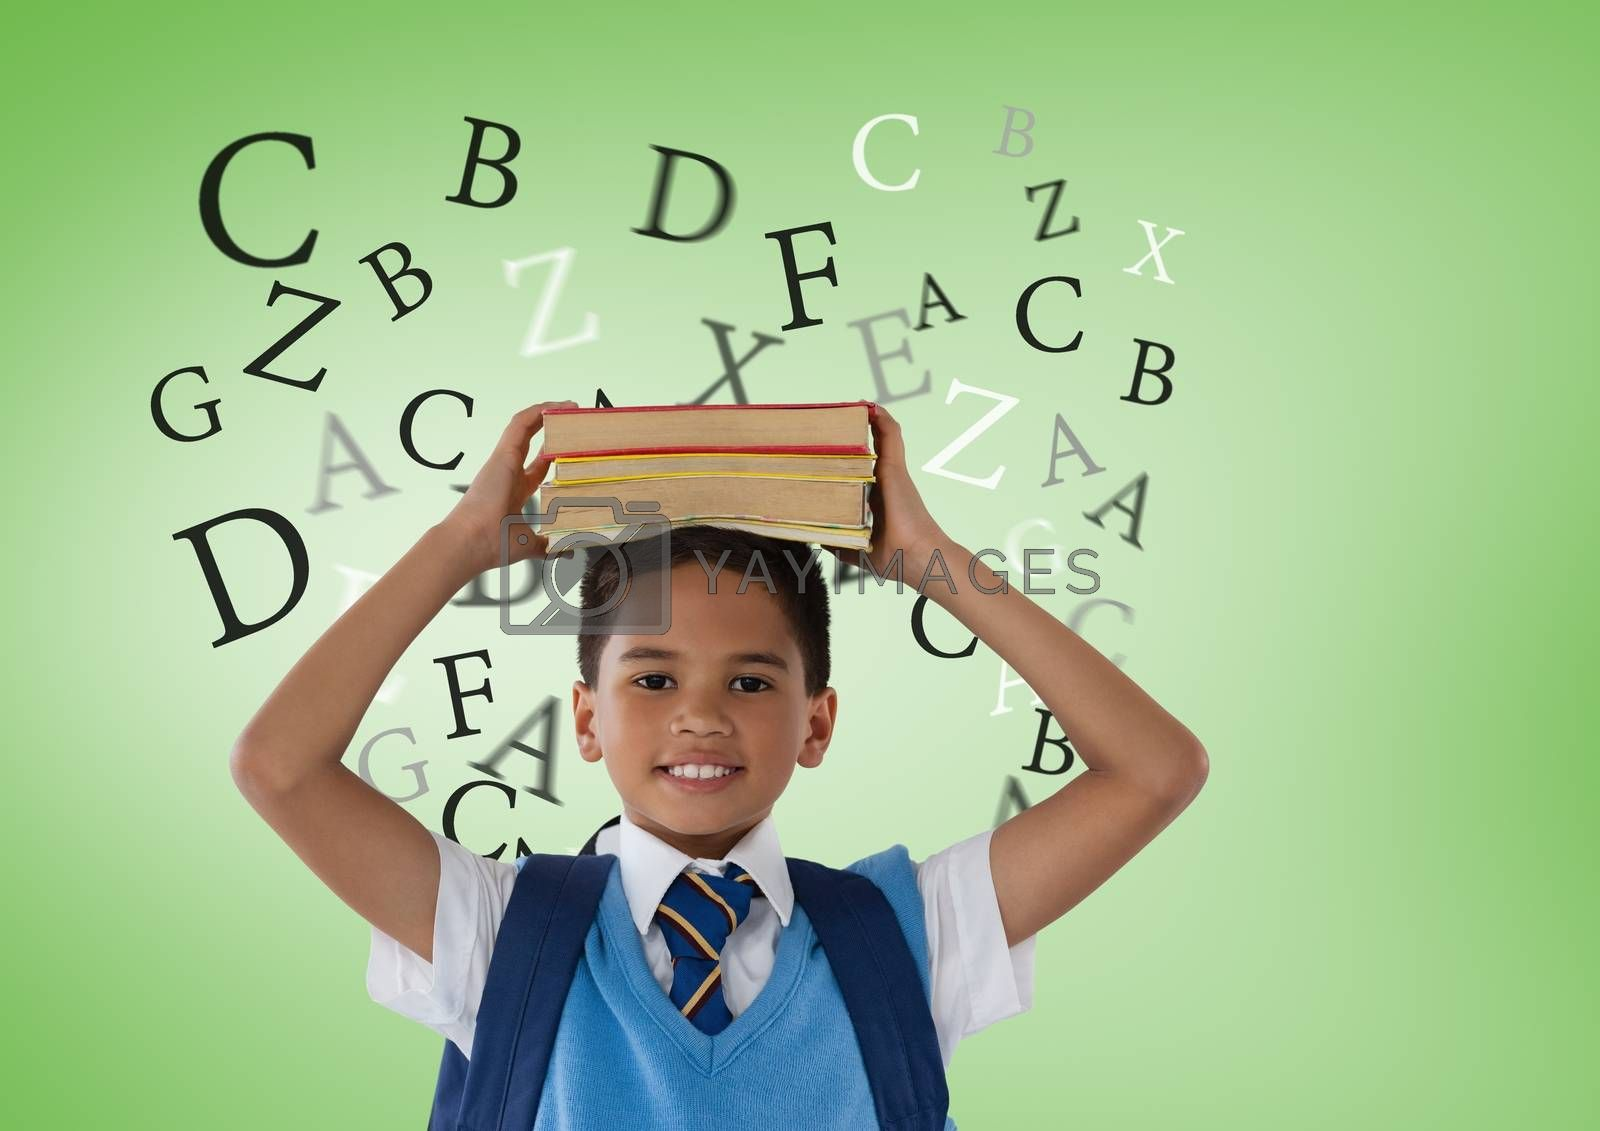 Many letters around Schoolboy holding books in front of green background by Wavebreakmedia